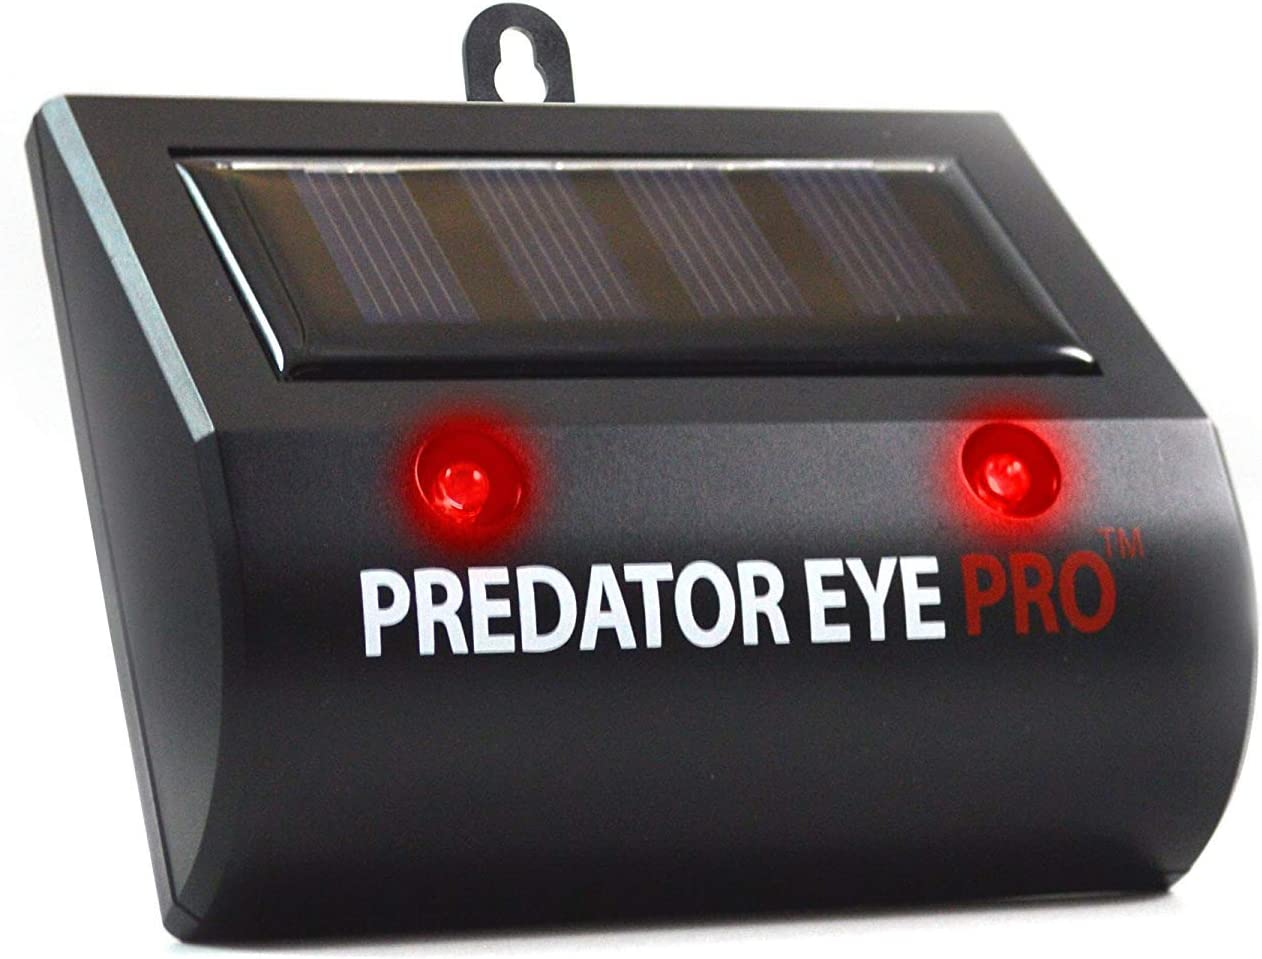 Comforday Cat Predator Eye Pro Night Solar Animal Repellent Outdoor Waterproof Application in Yard, Lawn, Garden, Park and Farm, Black